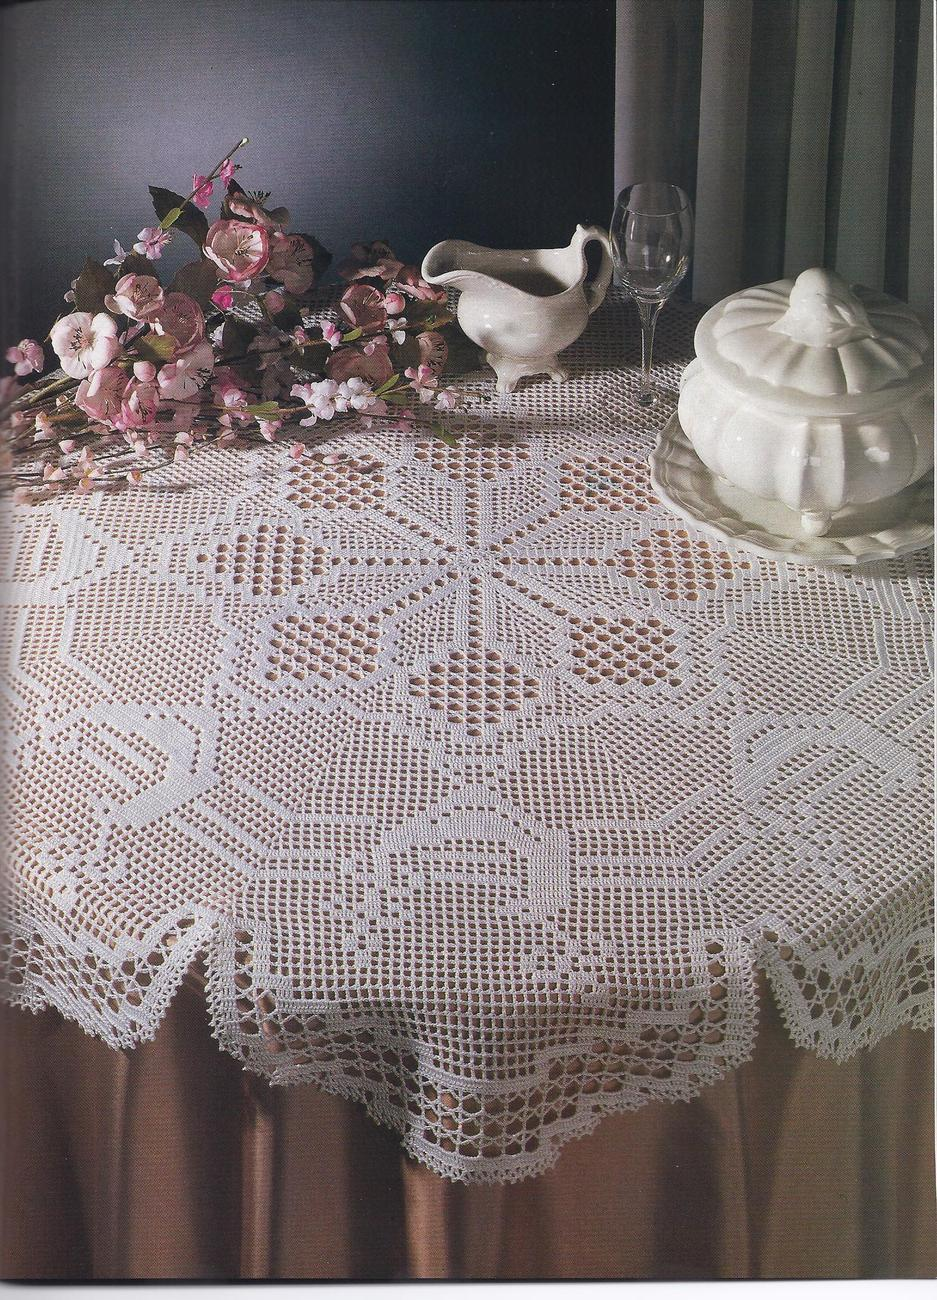 Decorative Crochet Pattern Magazine #20~~30 Patterns - Patterns ...